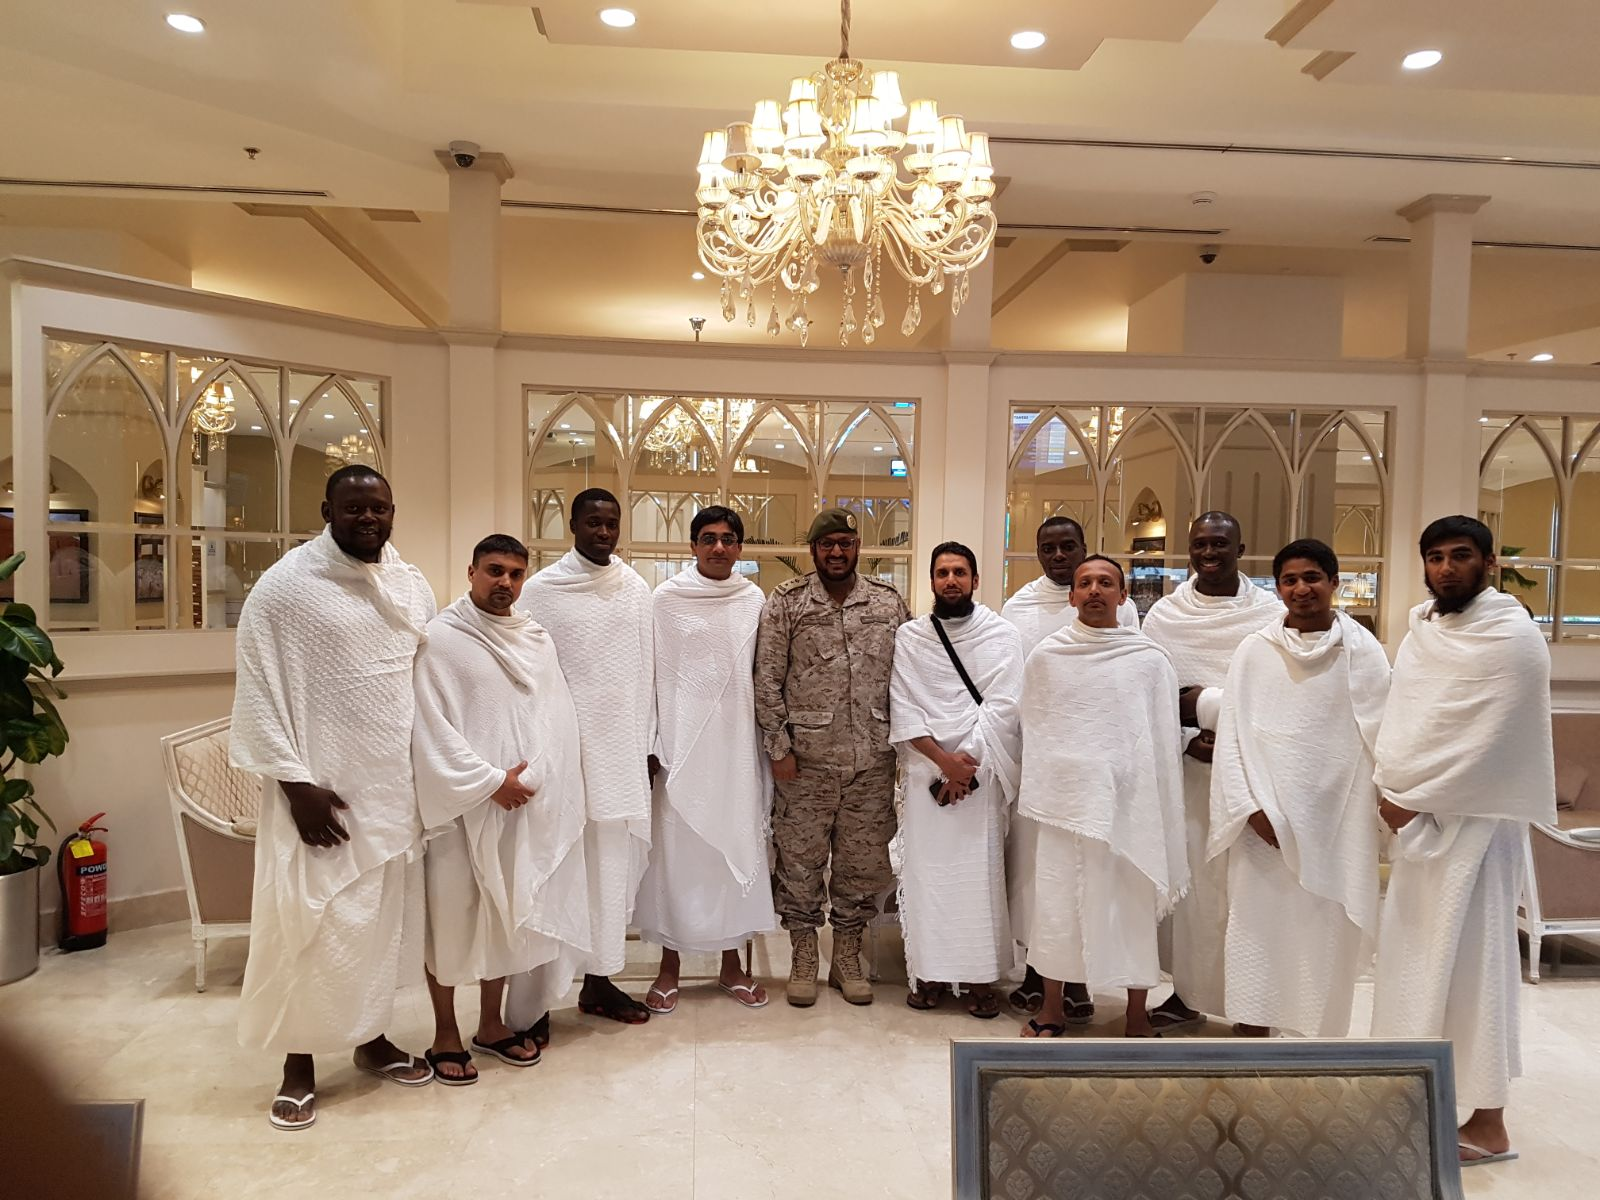 Muslims in the British Armed forces partake in Umrah